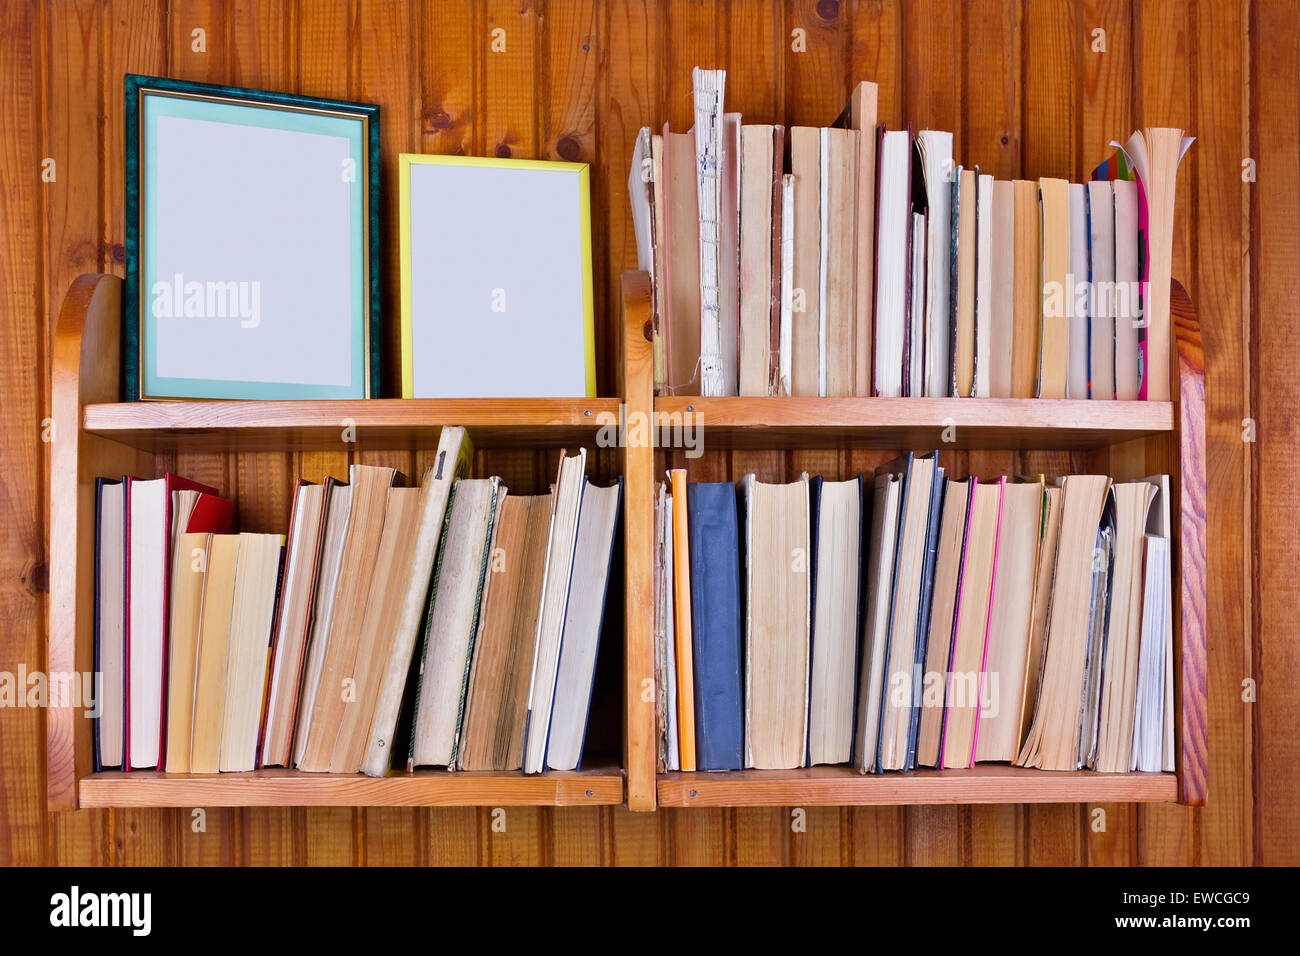 The old forgotten decrepit books and photos on the wooden shelf. The wall of the rural house is upholstered with - Stock Image